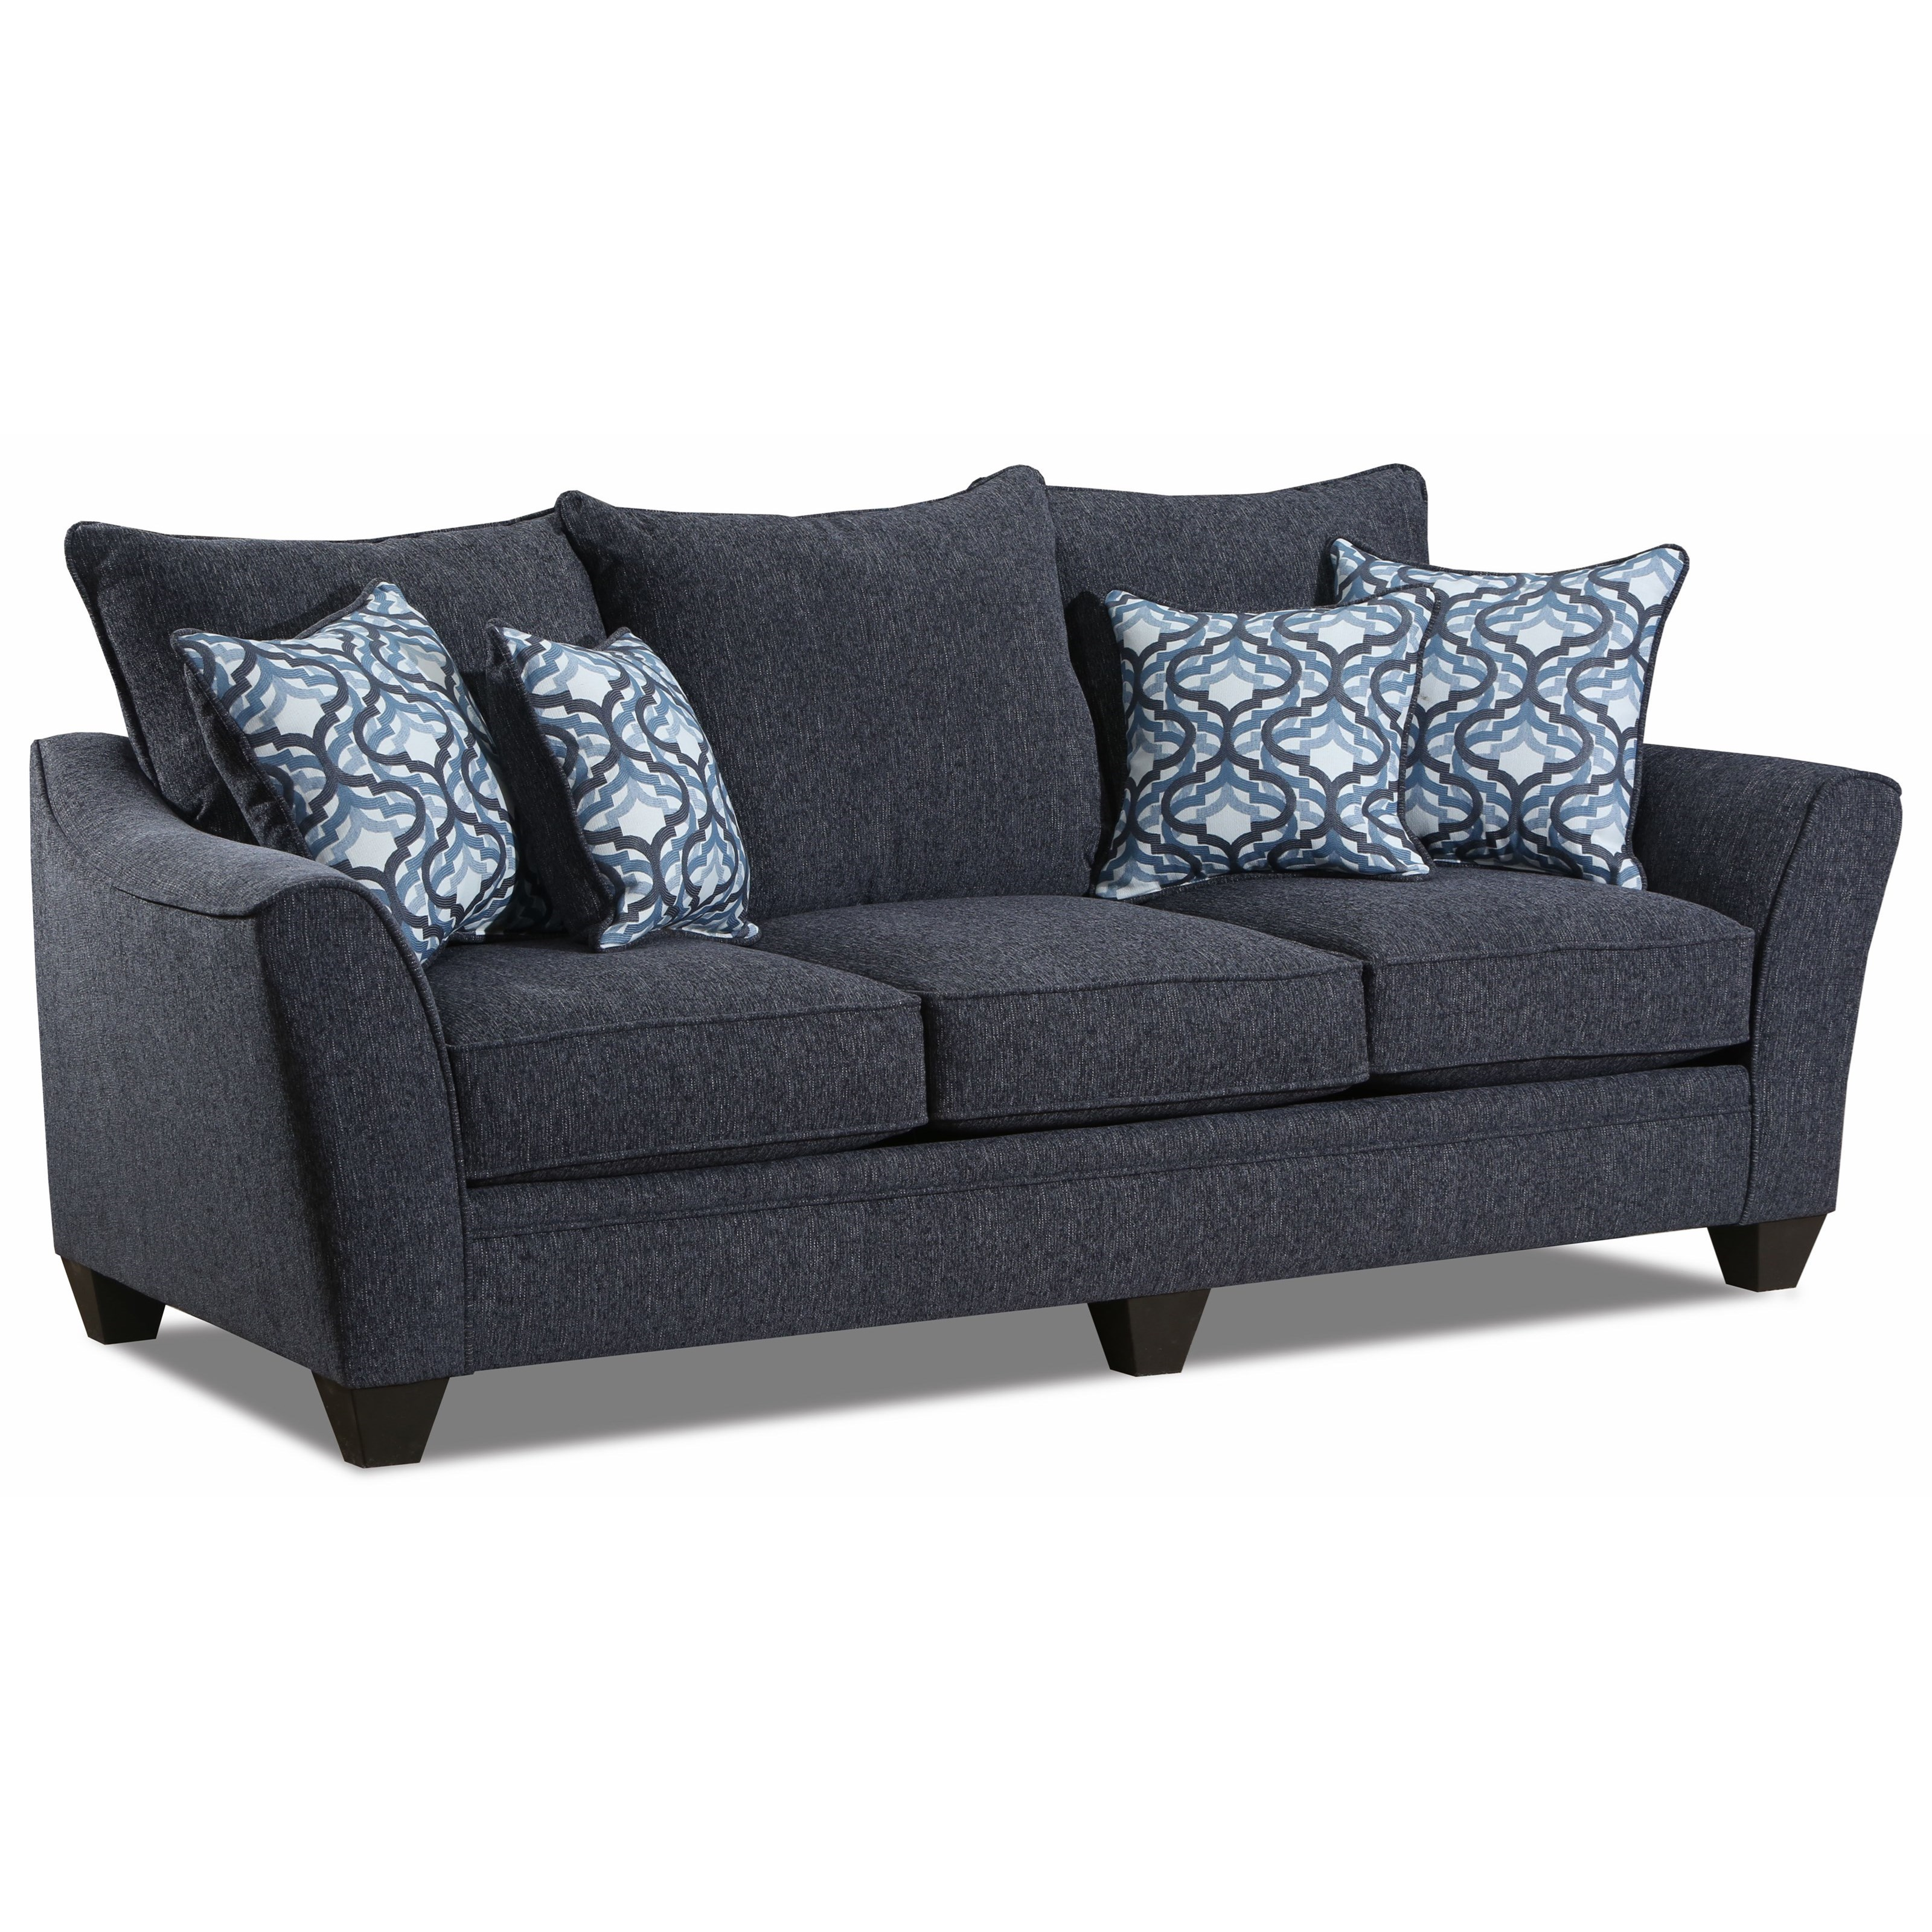 3850 Sofa by Peak Living at Prime Brothers Furniture